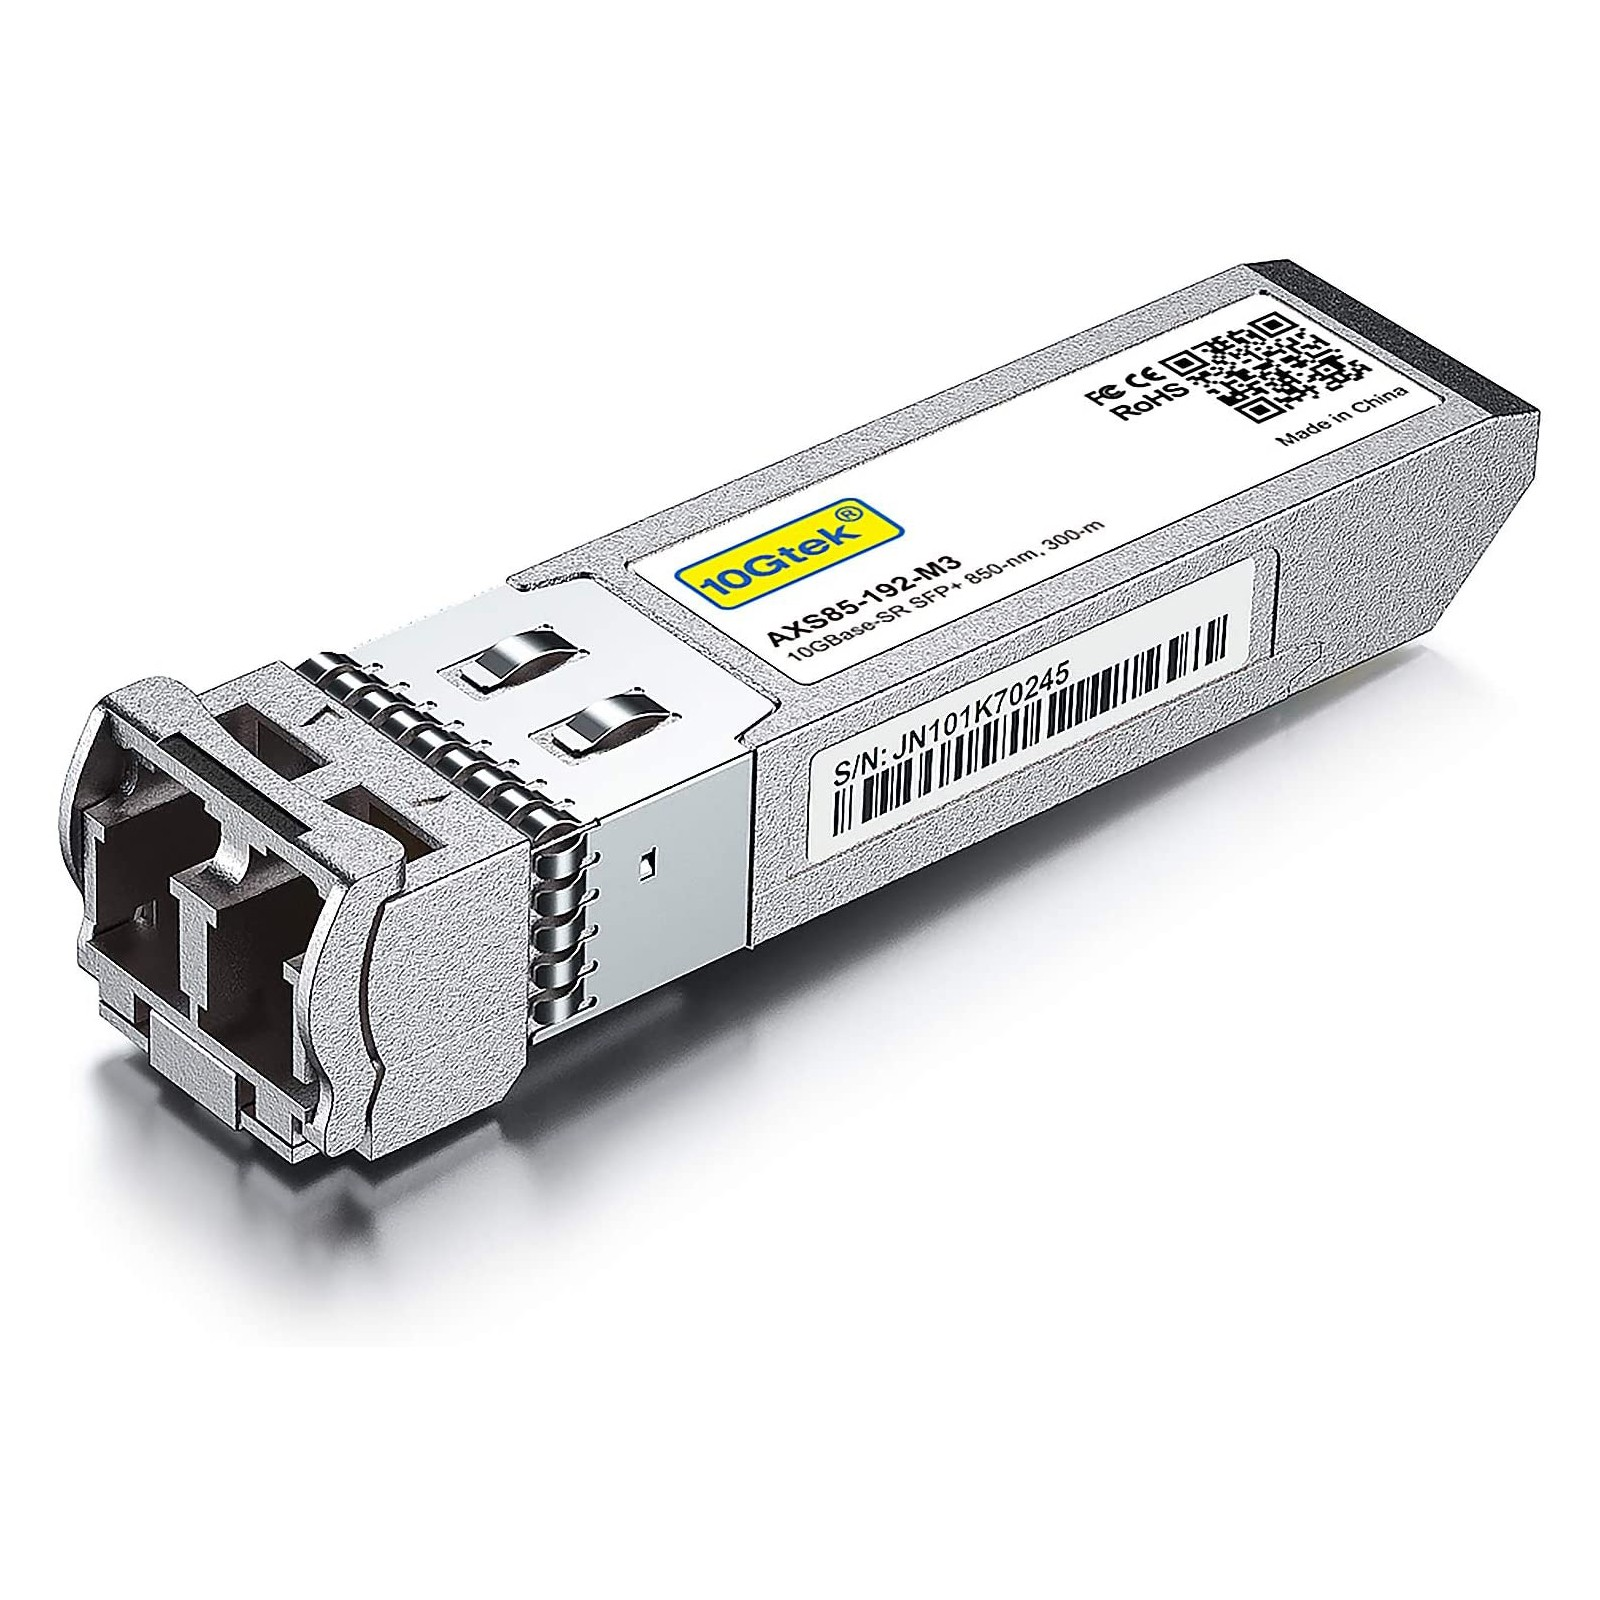 10GBase-SR SFP+ Transceiver, 10G 850nm MMF, up to 300 meters